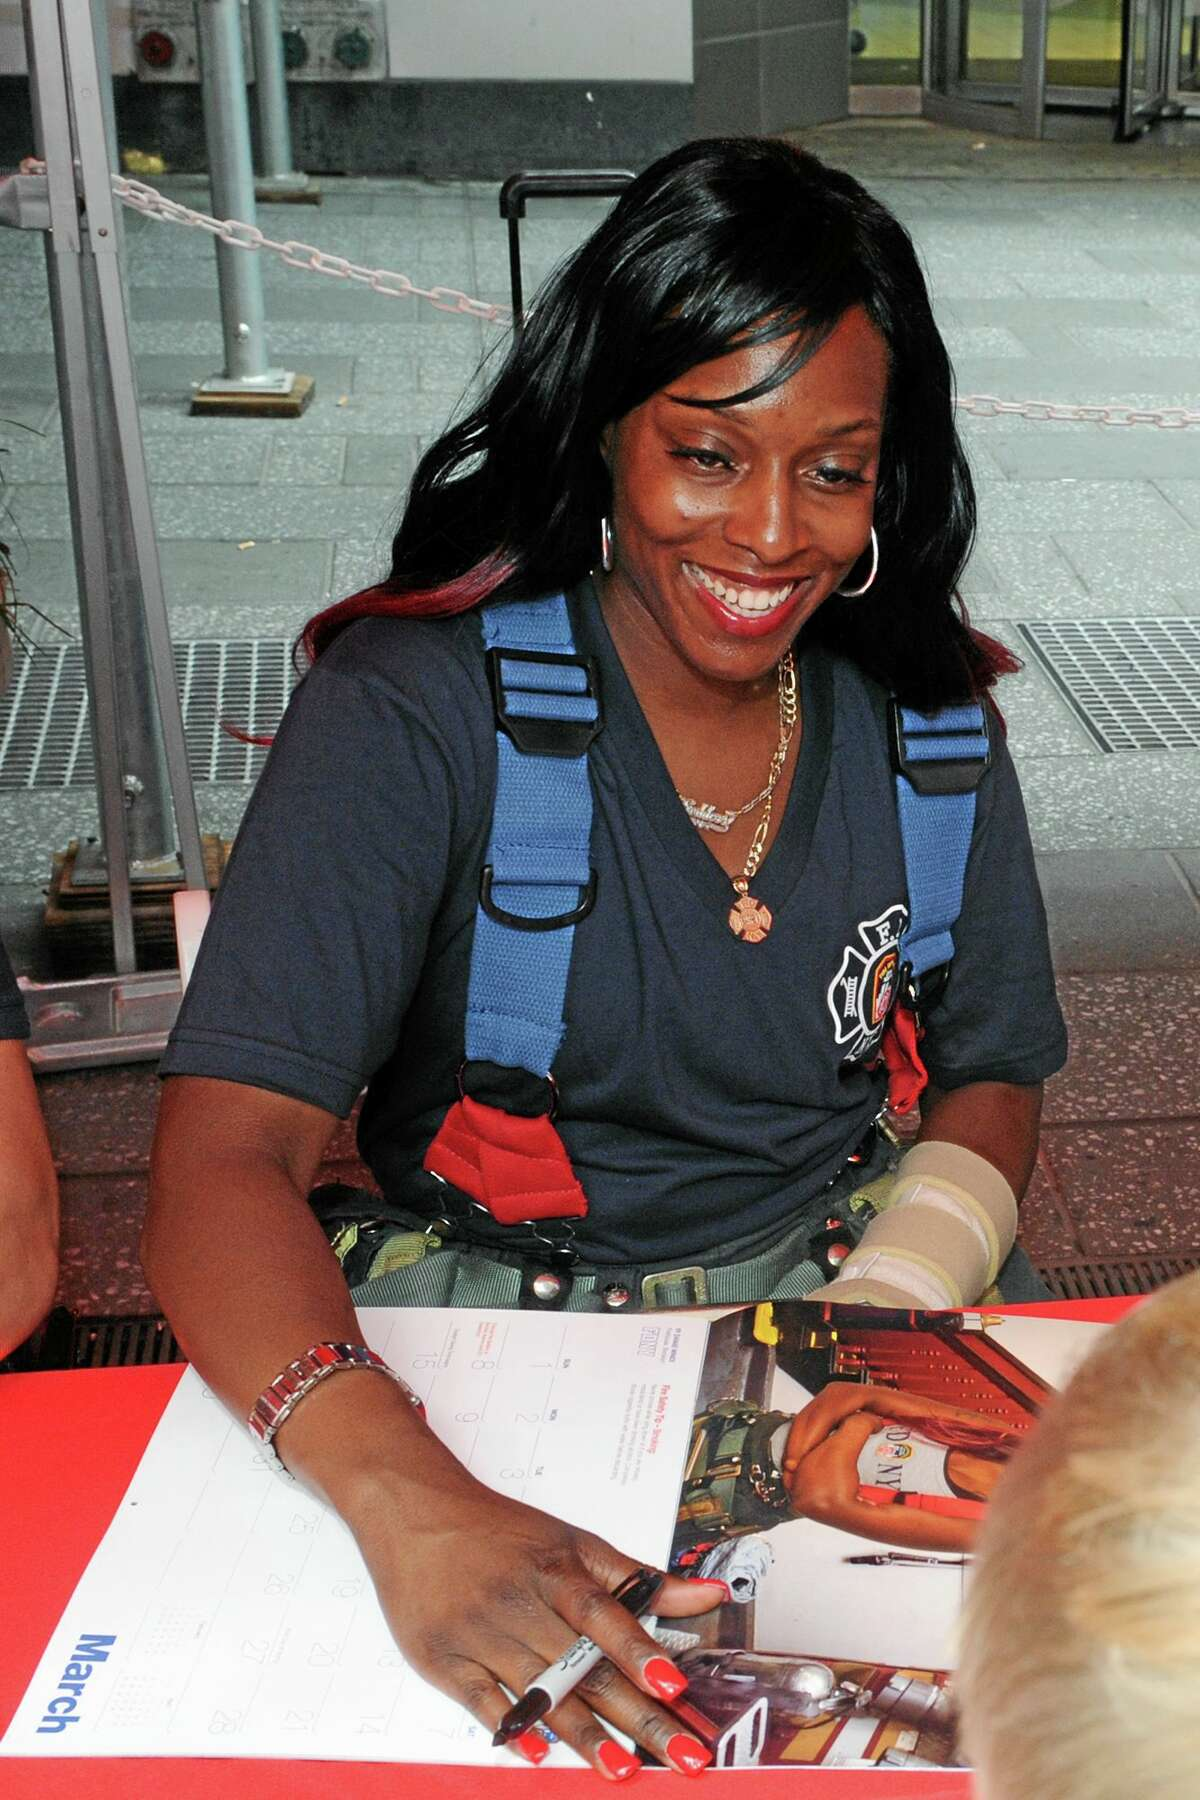 In a photo provided by the New York City Fire Department, firefighter Danae Mines autographs a copy of the 2015 Calendar of Heroes, which features her as Miss March, Tuesday, July 15, 2014, in New York's Times Square. Mines, of Engine Co. 6 in the South Bronx, is an 11-year veteran, one of only 41 female firefighters in the department, and the first female firefighter to appear in the famed charity calendar of hard bodies. (AP Photo/FDNY)